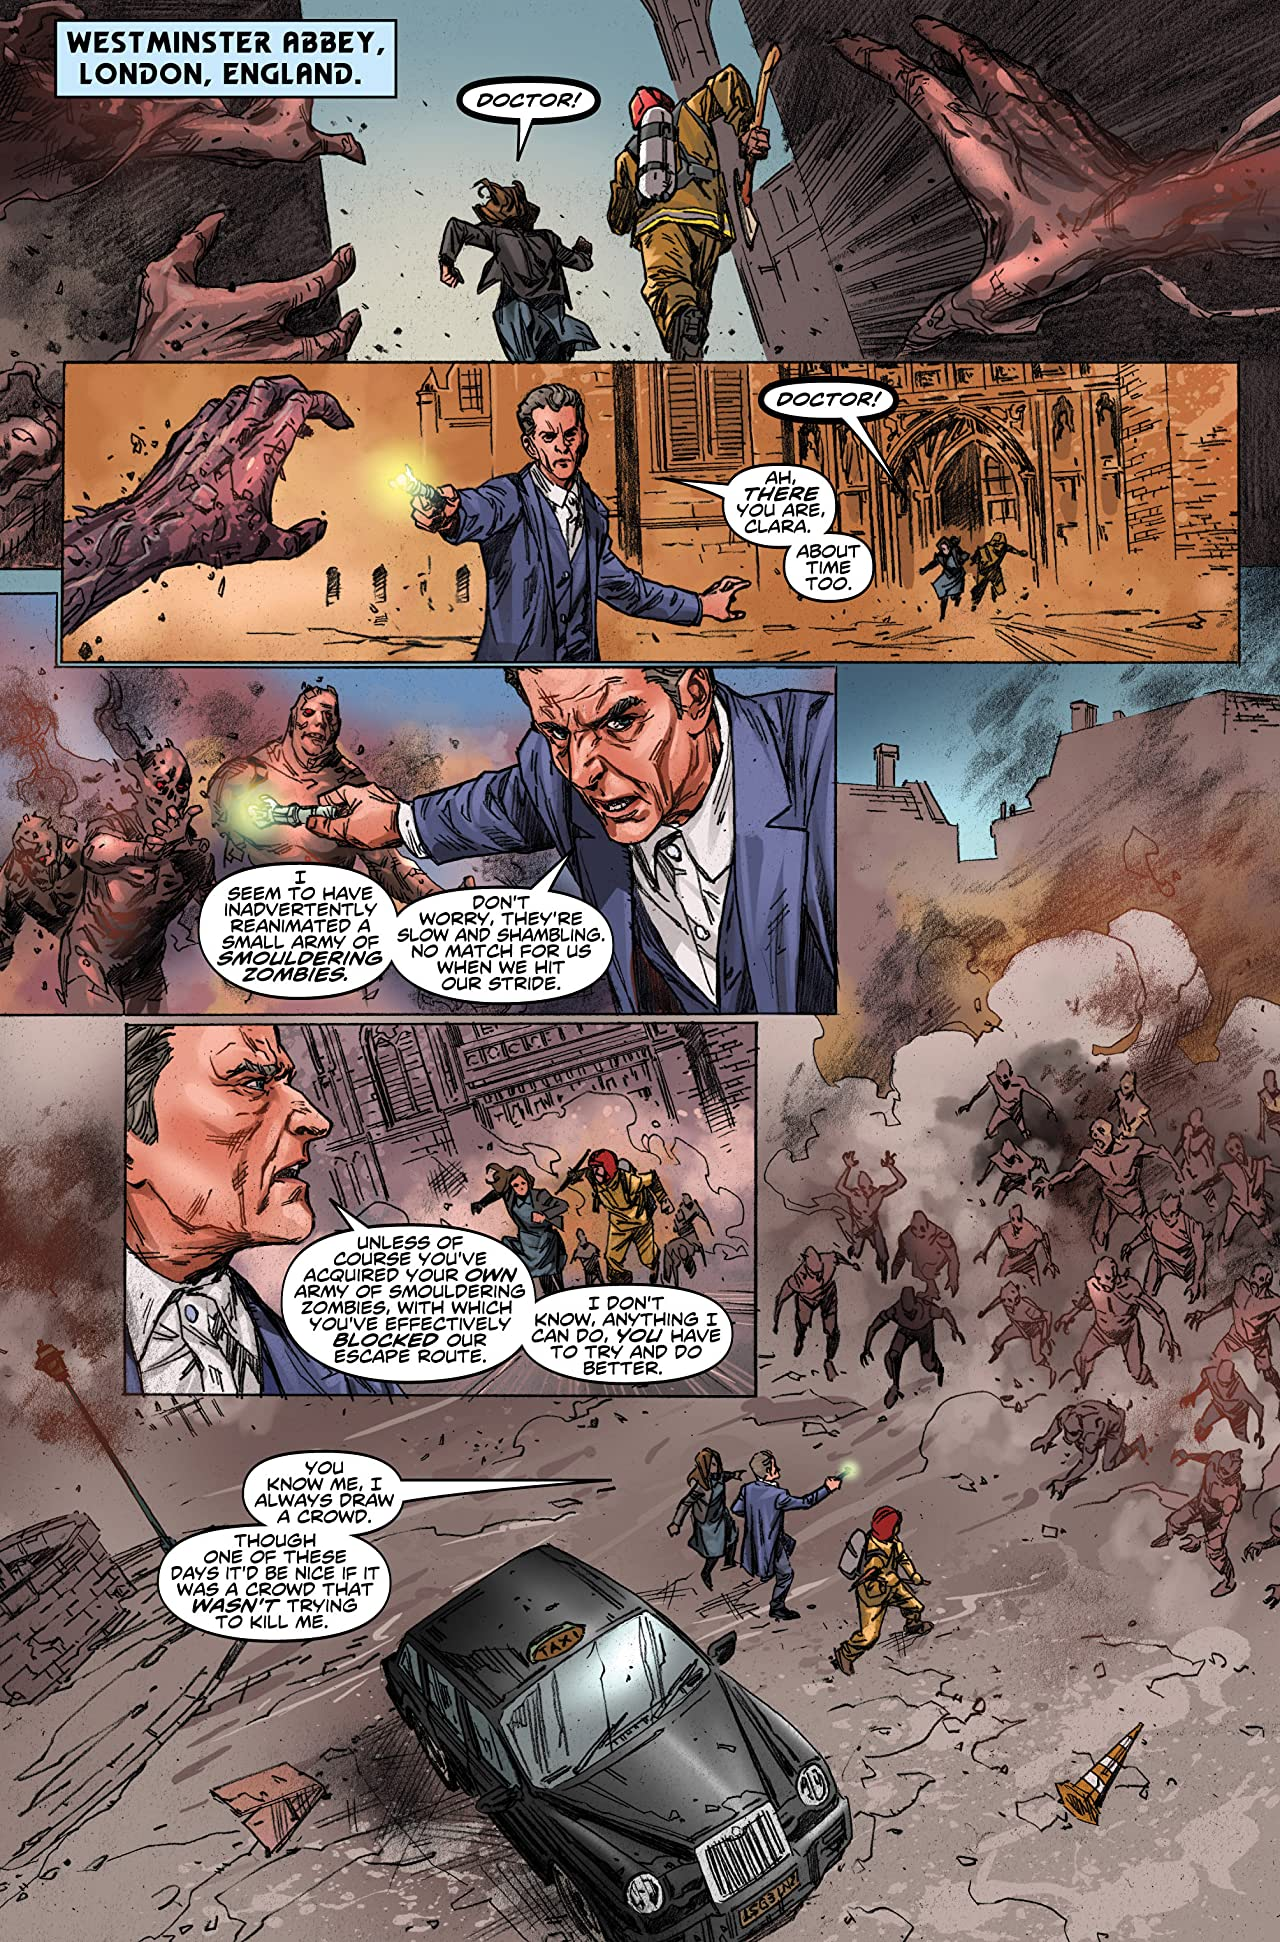 Doctor Who: The Twelfth Doctor #13